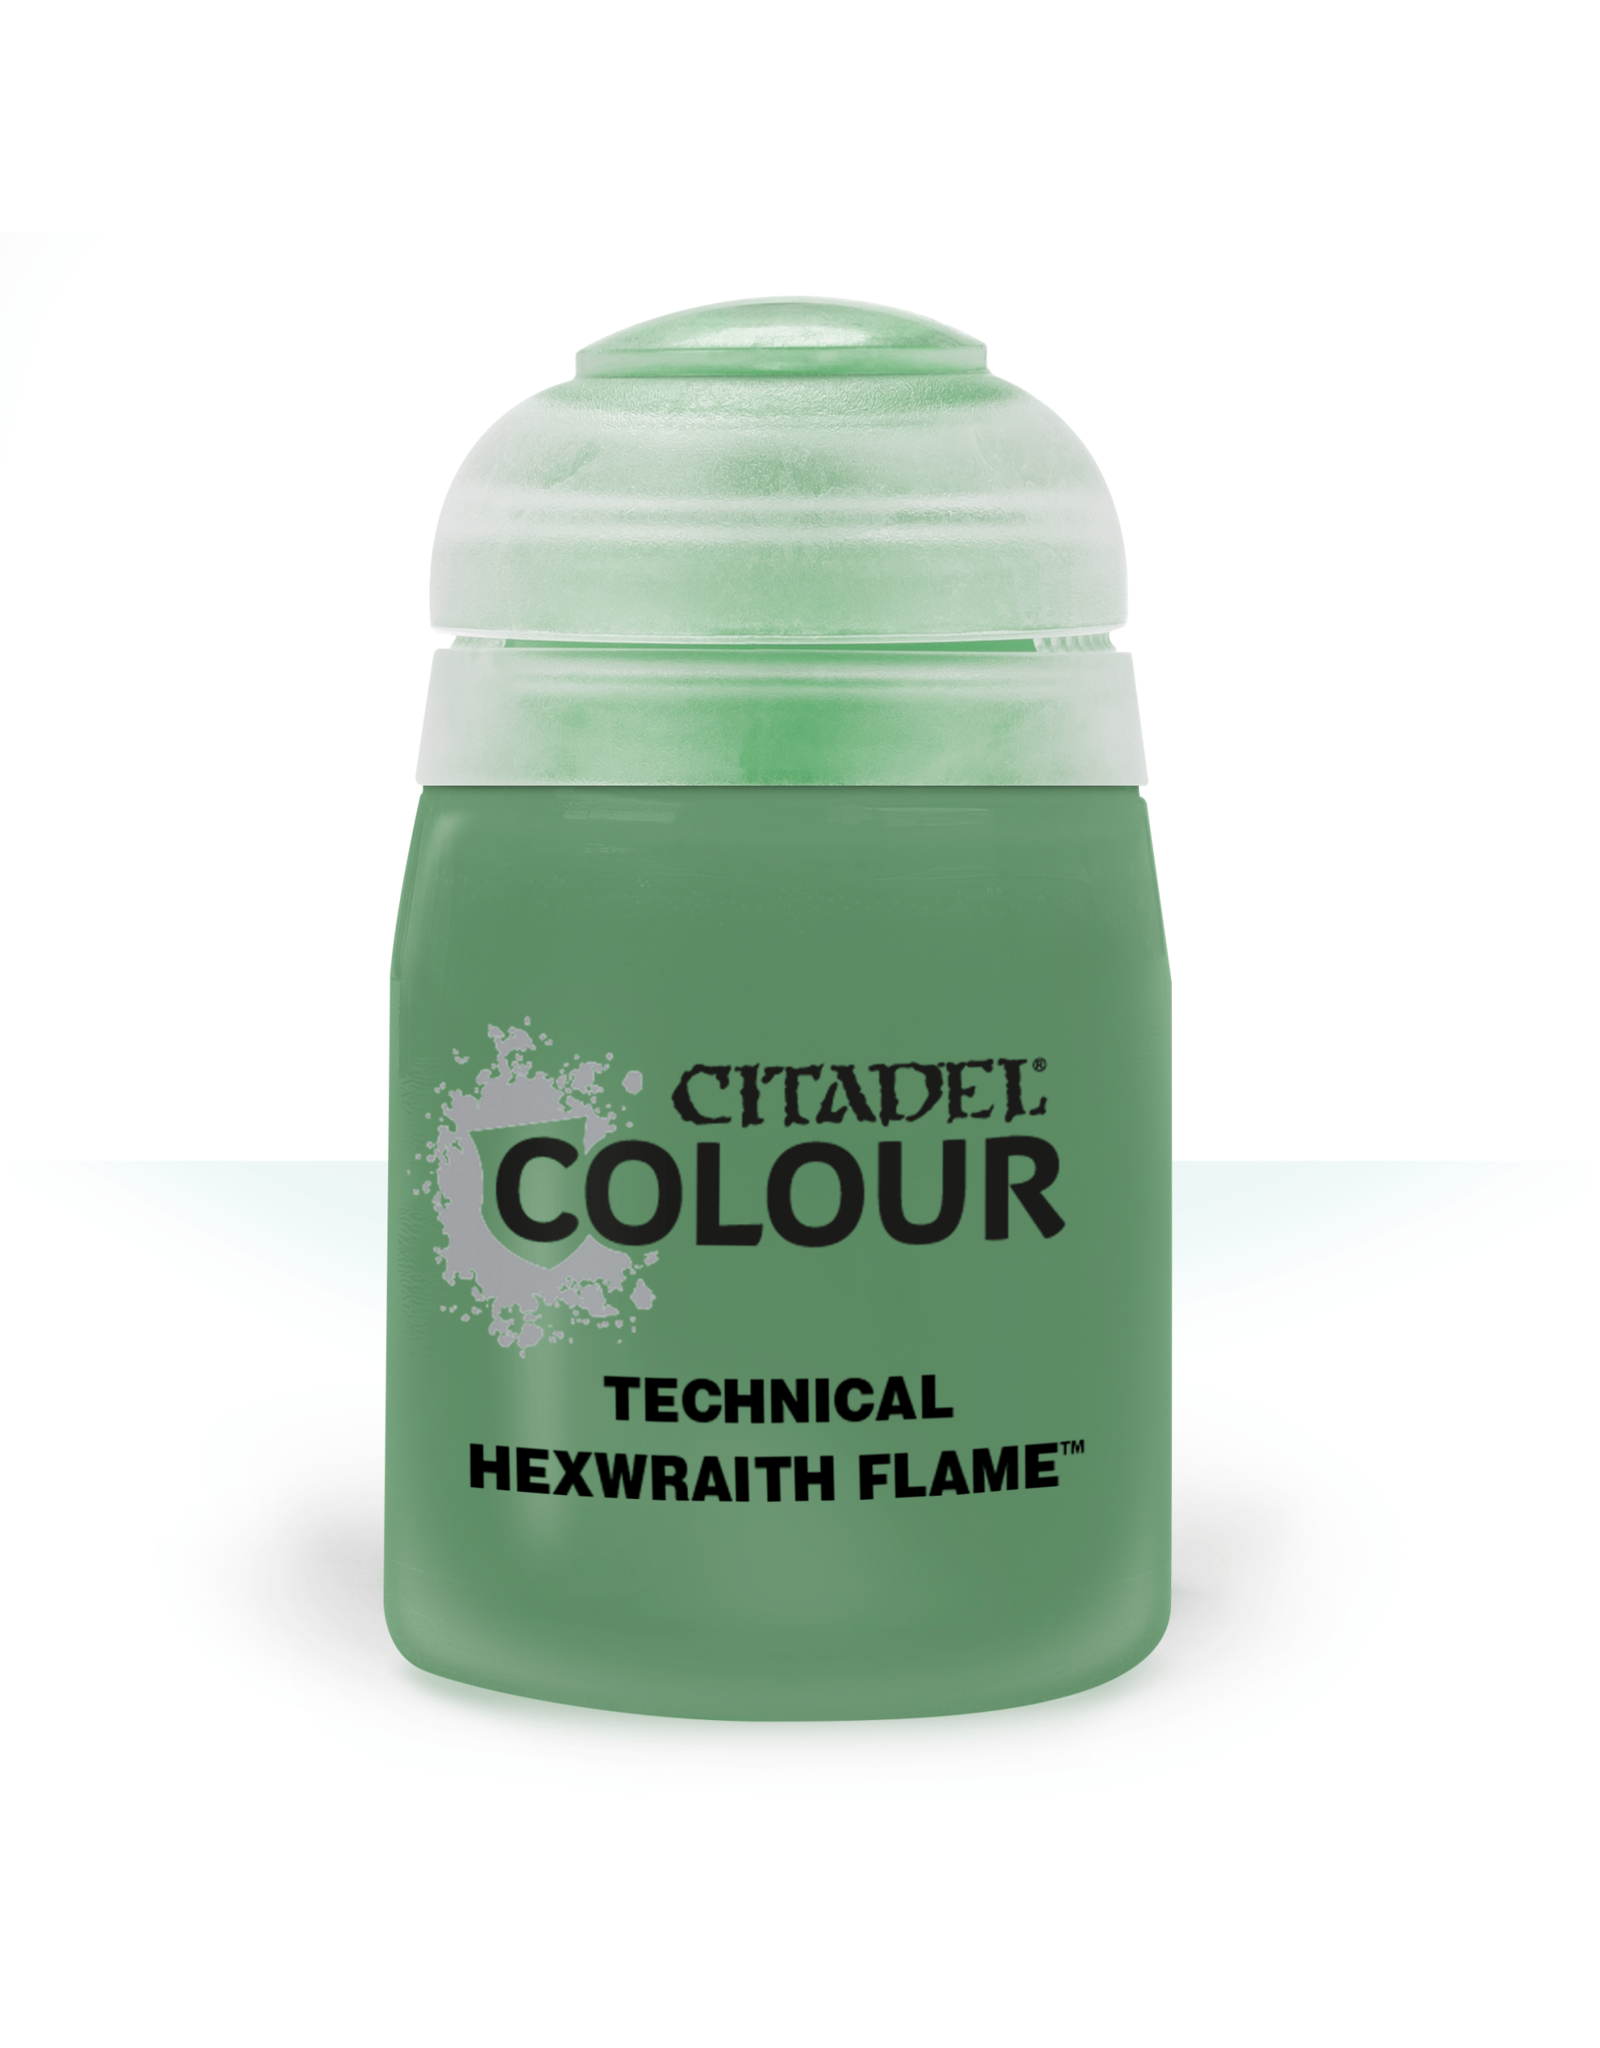 Citadel Citadel Paints Technical Paint Hexwraith Flame